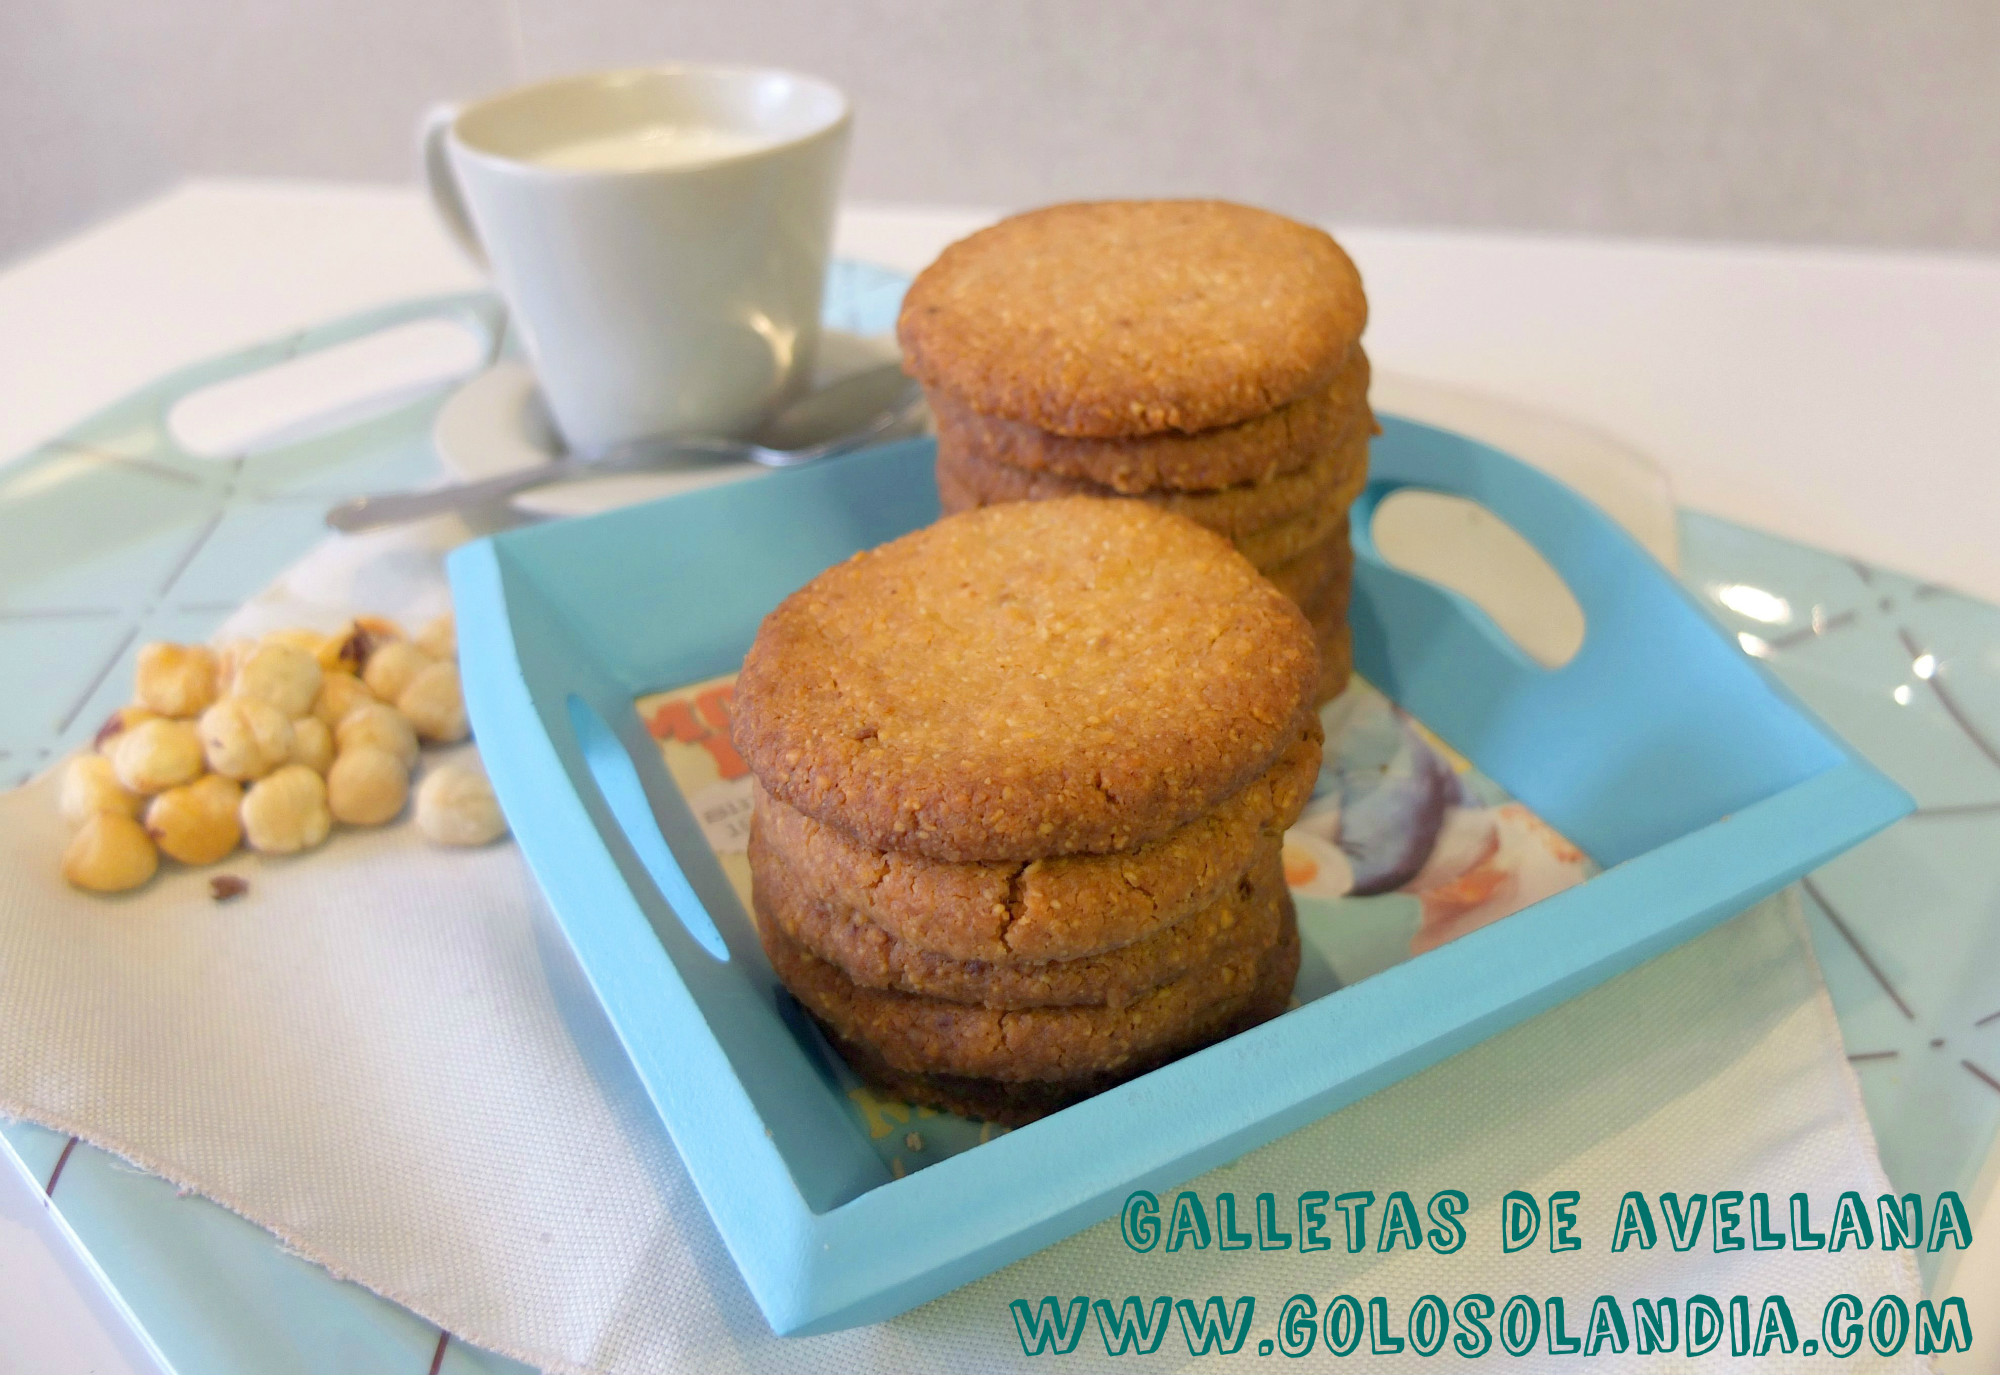 Galletas de avellana